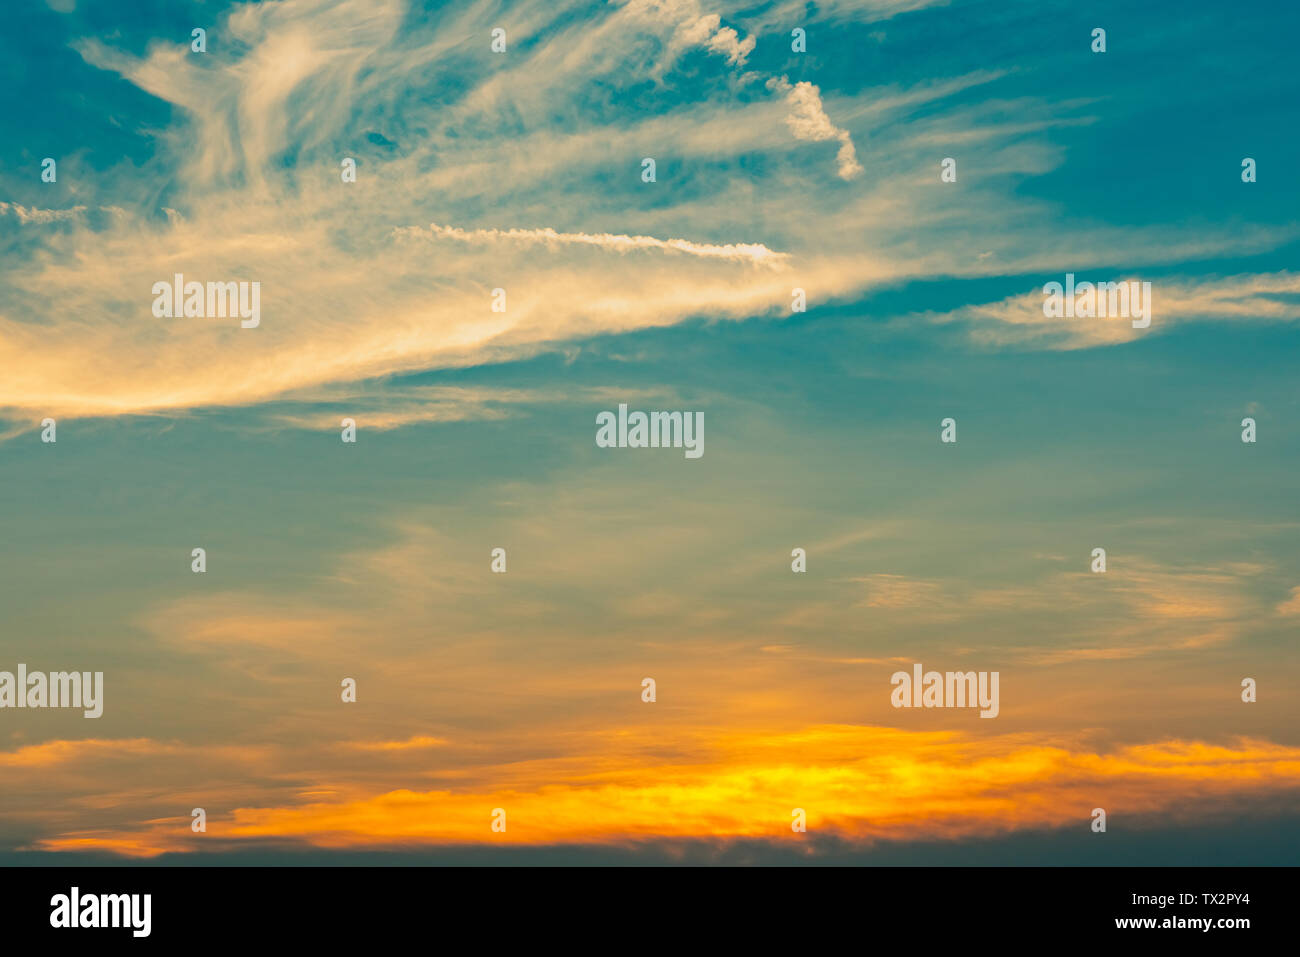 Beautiful blue and golden sky and clouds abstract background. Yellow-orange clouds on sunset sky. Warm weather background. Art picture of sky at sunse - Stock Image